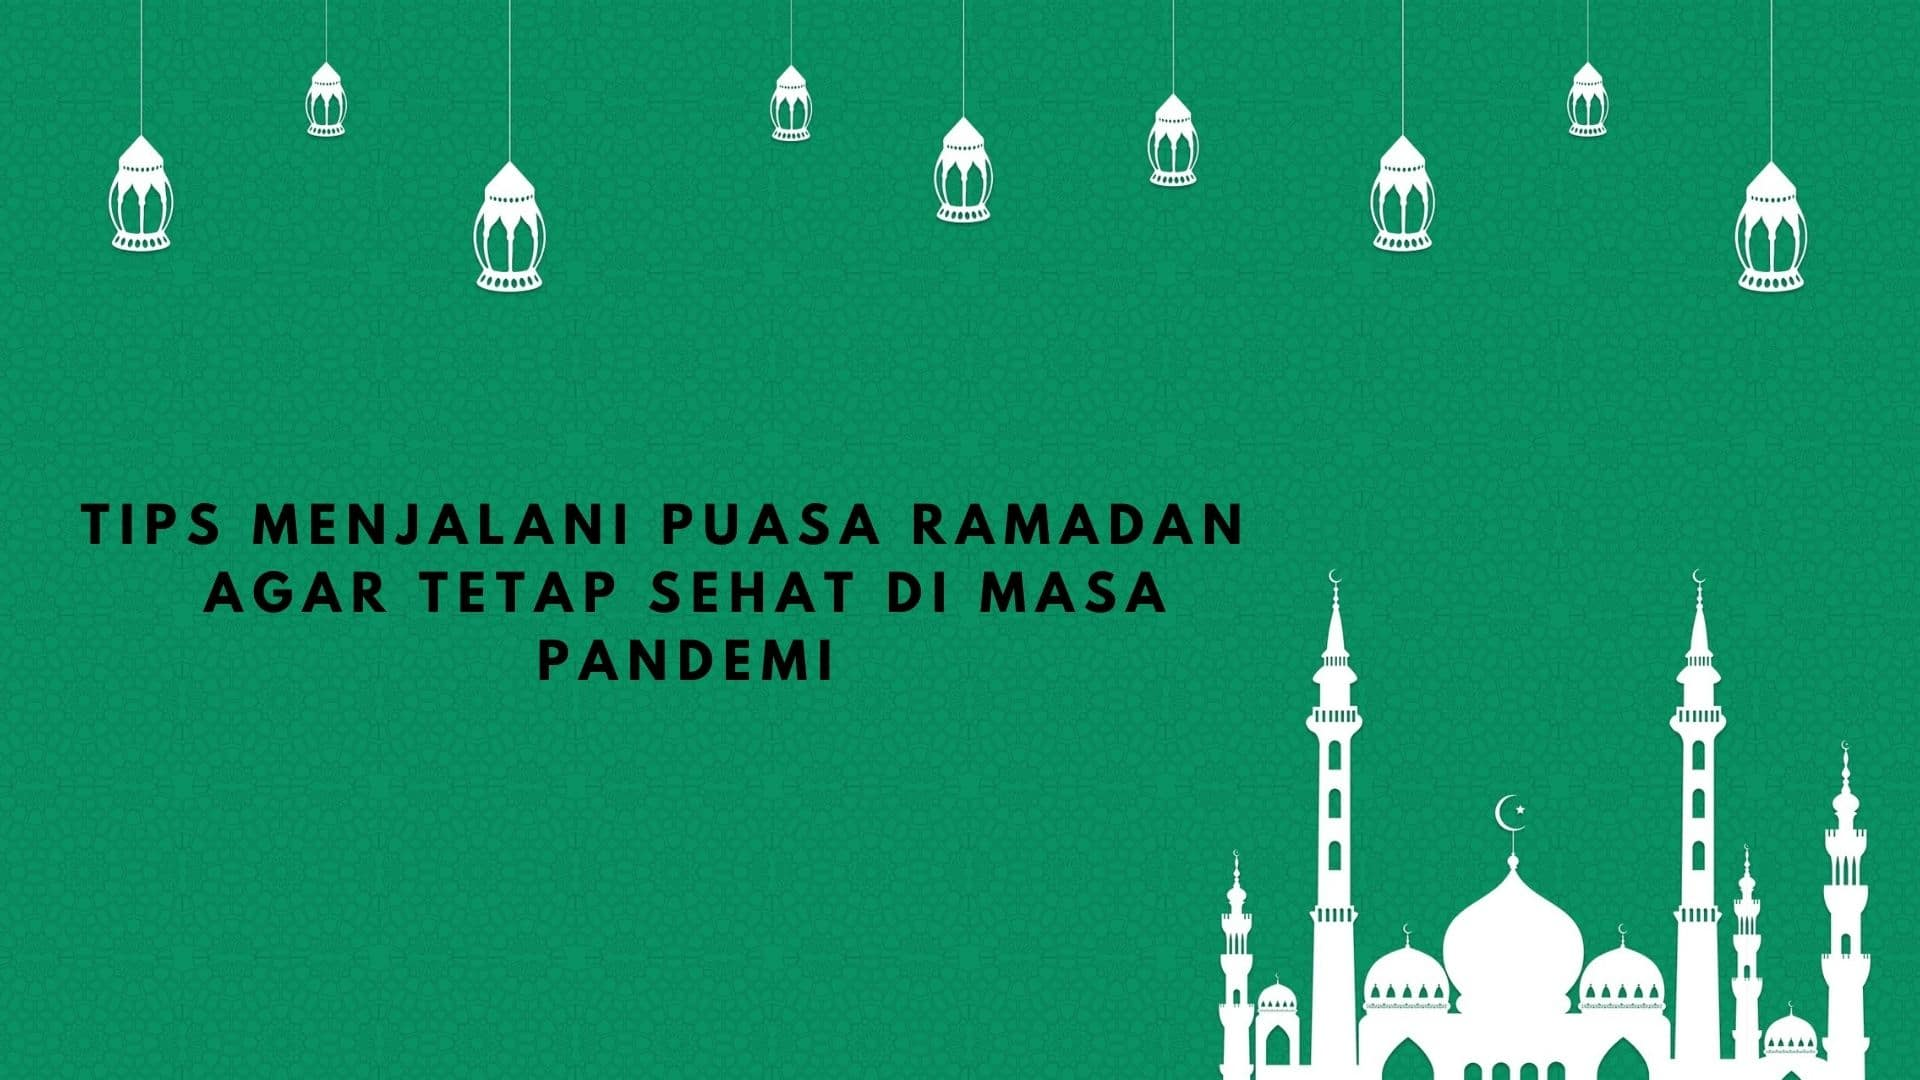 Tips for Ramadan Fasting To Stay Healthy During Pandemic